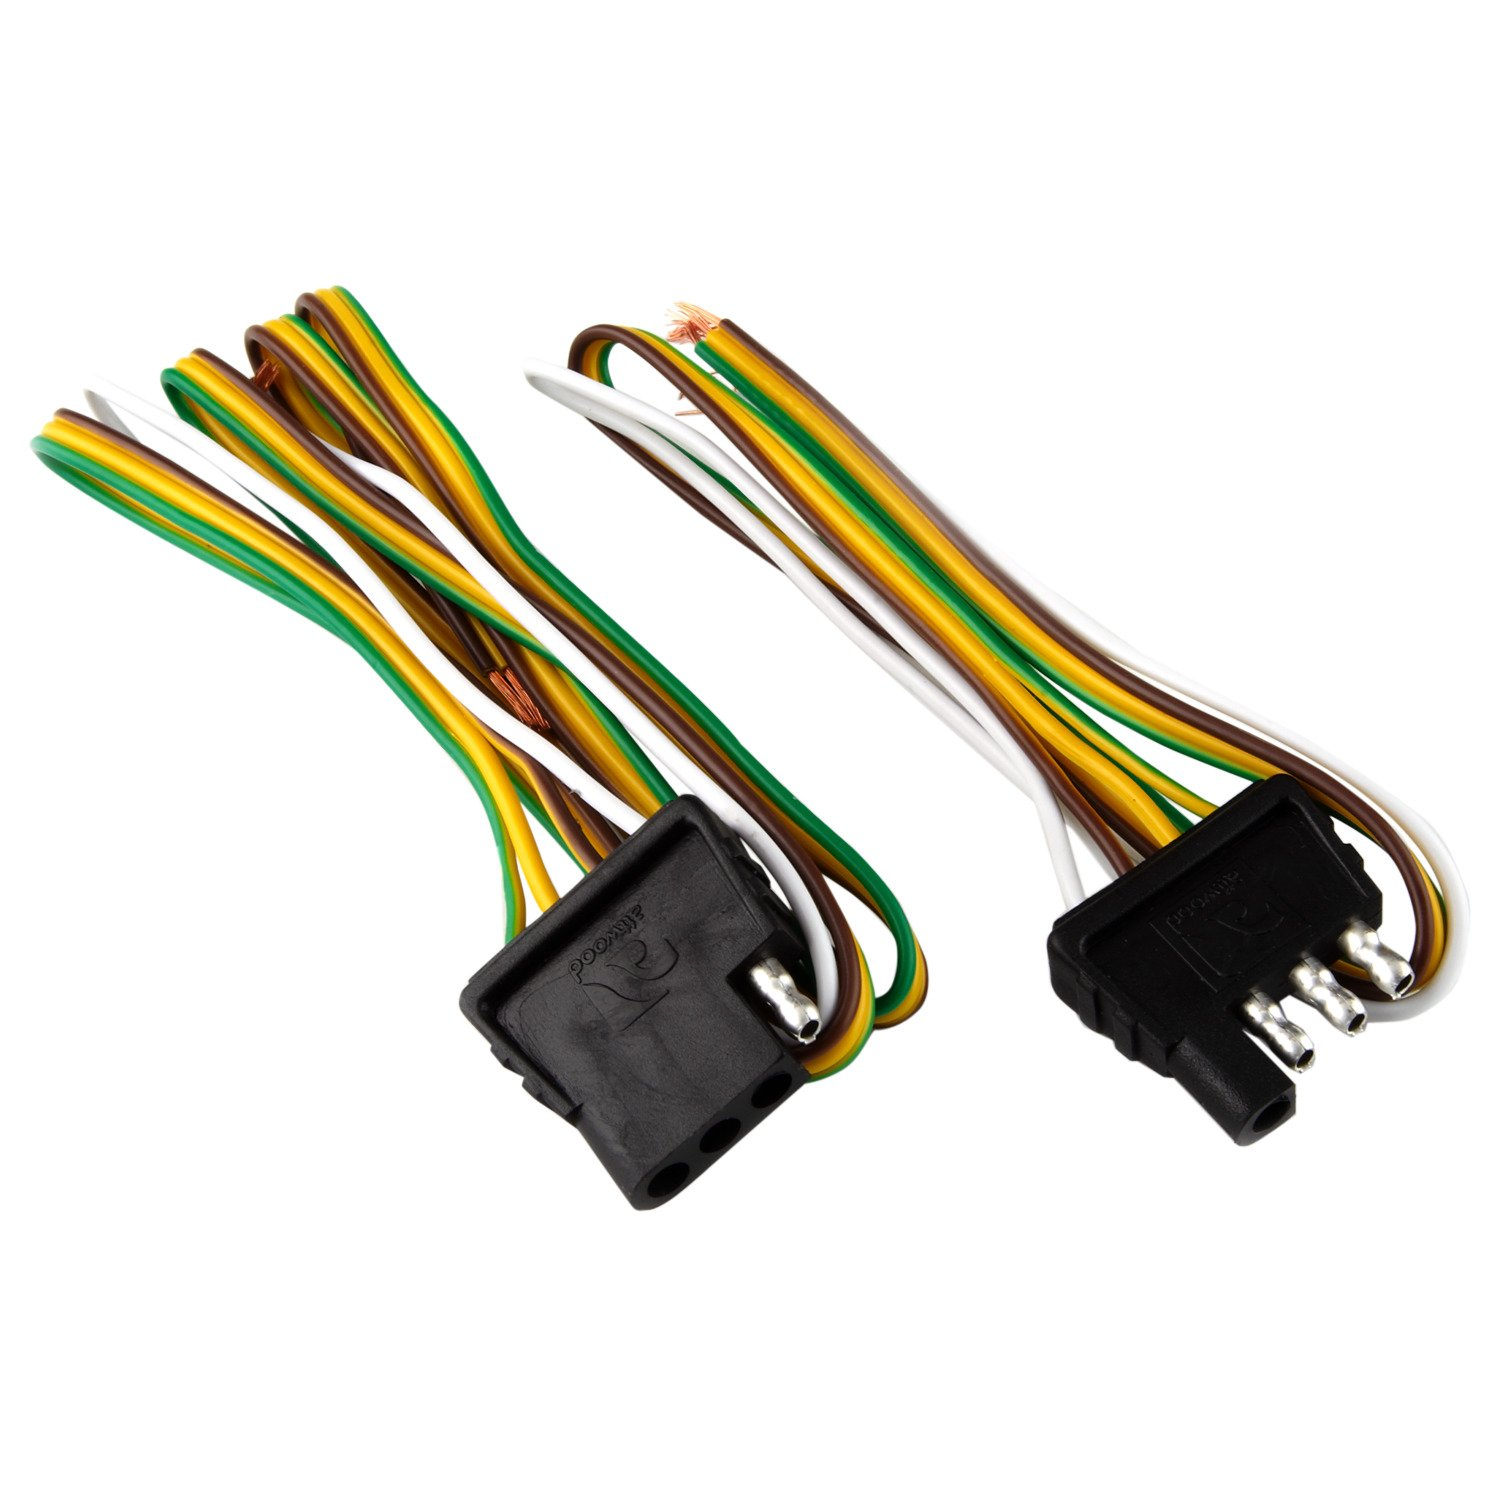 hight resolution of attwood 4 way flat wiring harness kit for vehicles and trailers 4 way flat trailer wiring harness